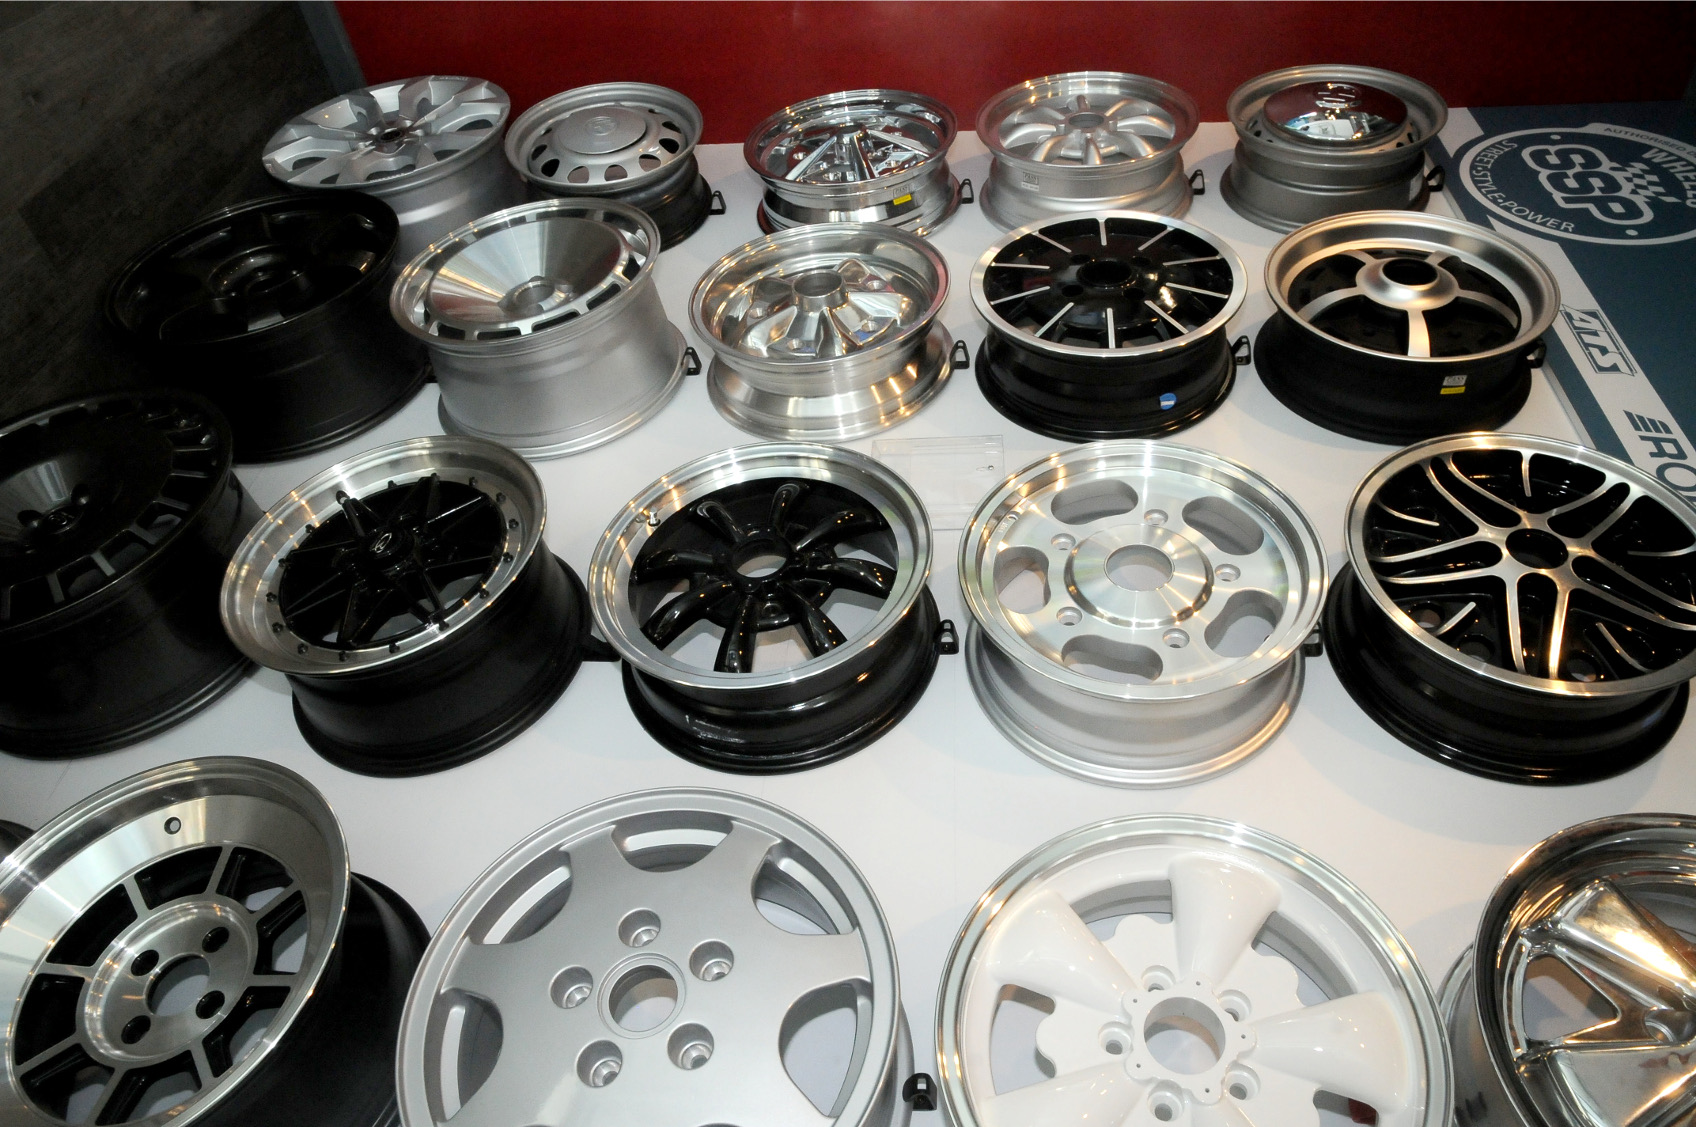 VW Heritage wheel range